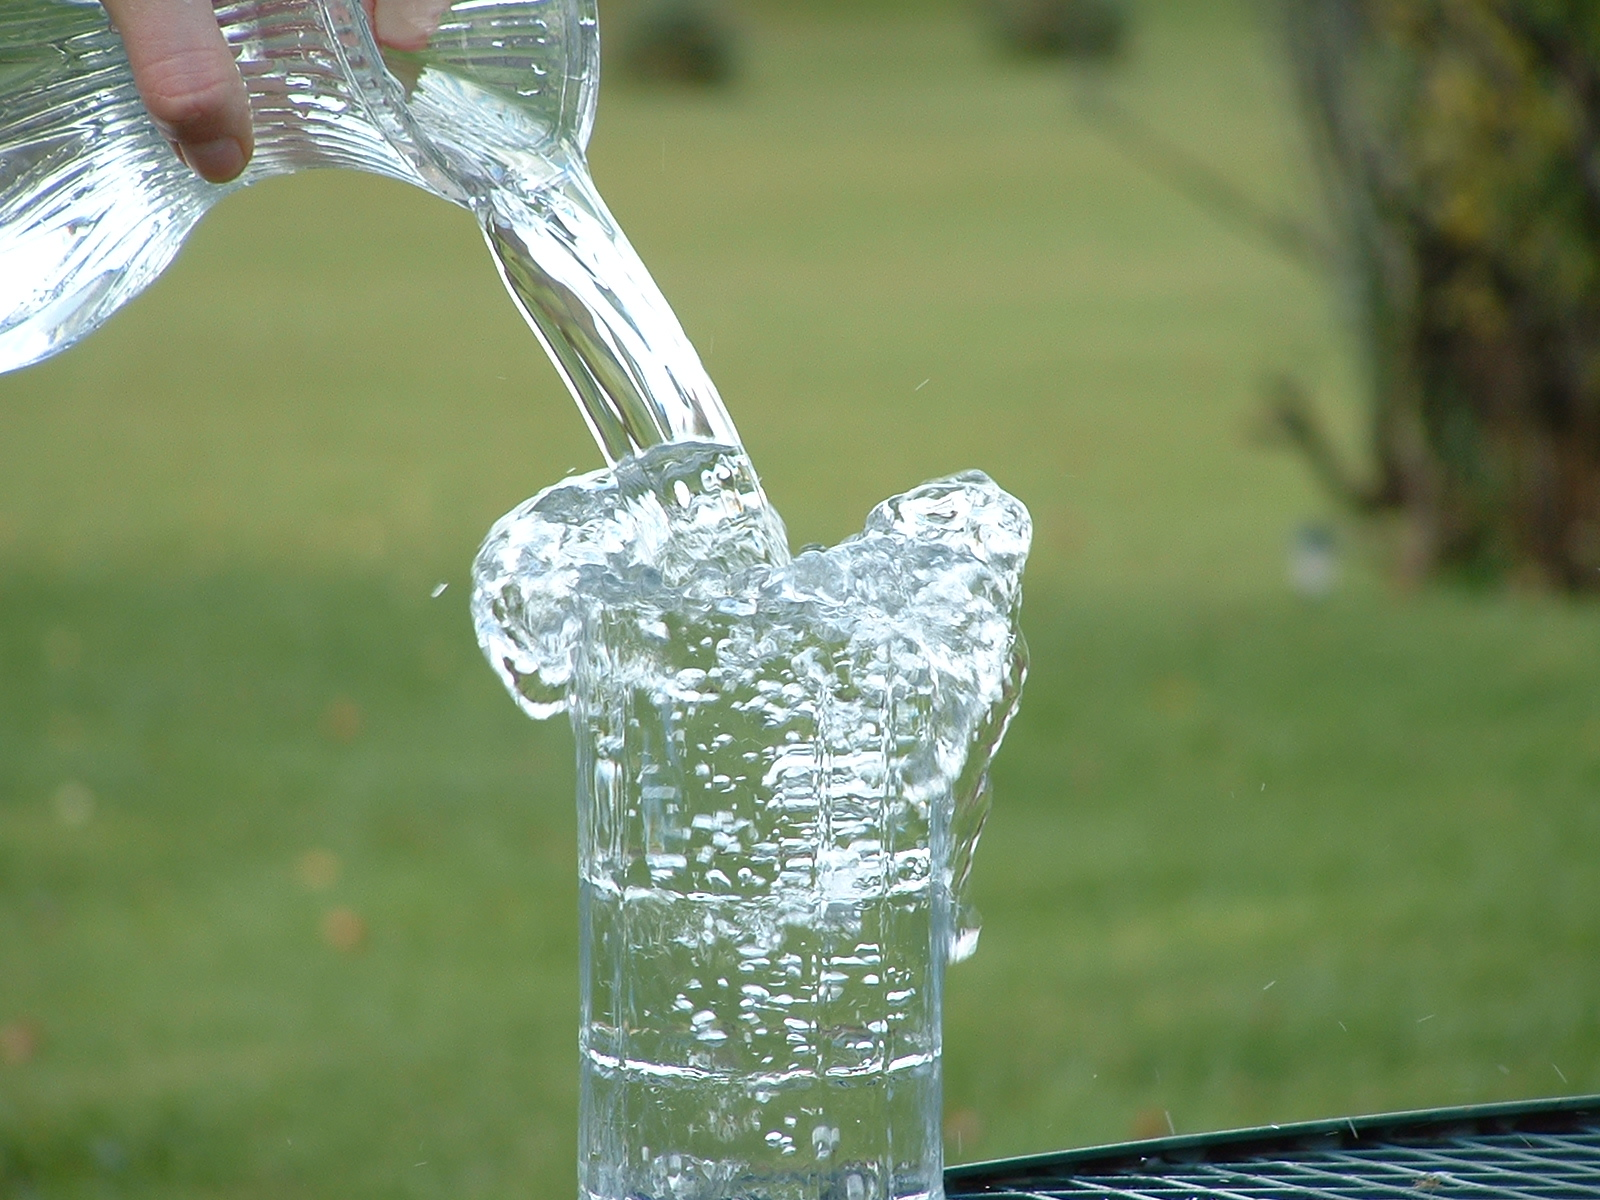 Overflowing glass of water.